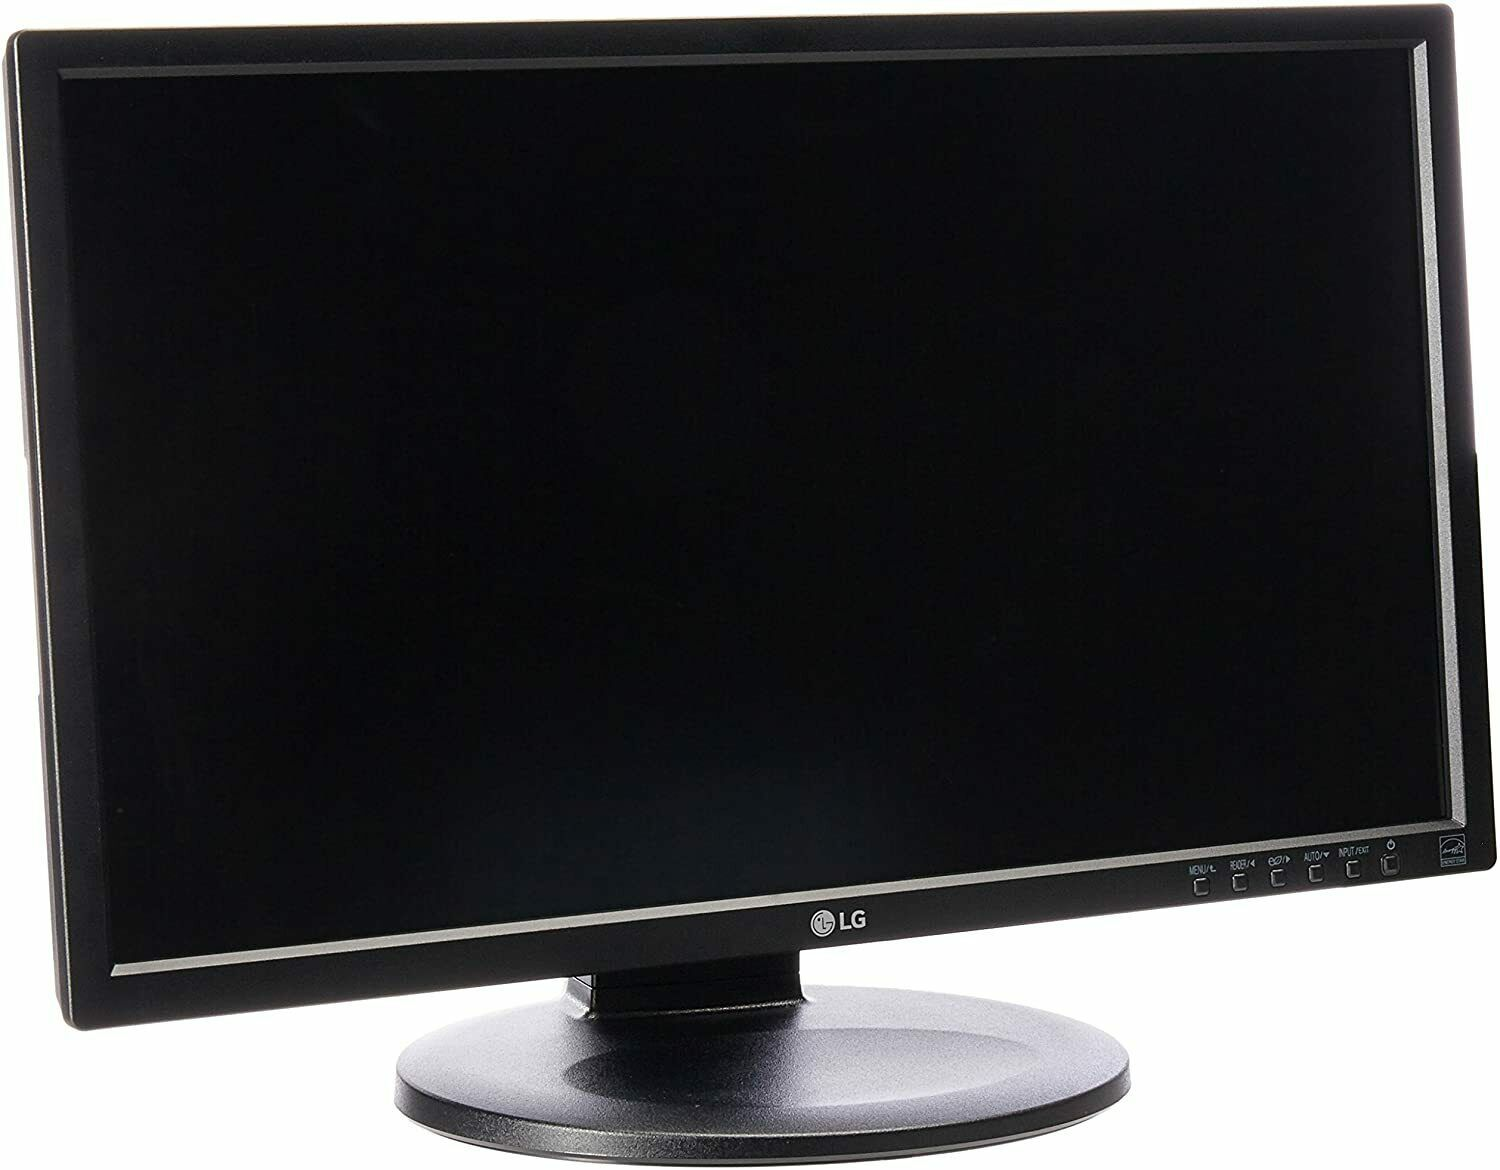 "Primary image for LG 22MB35PY-I IPS Professional 21.5"" Screen LED-Lit Monitor, Full HD, 250Nit"